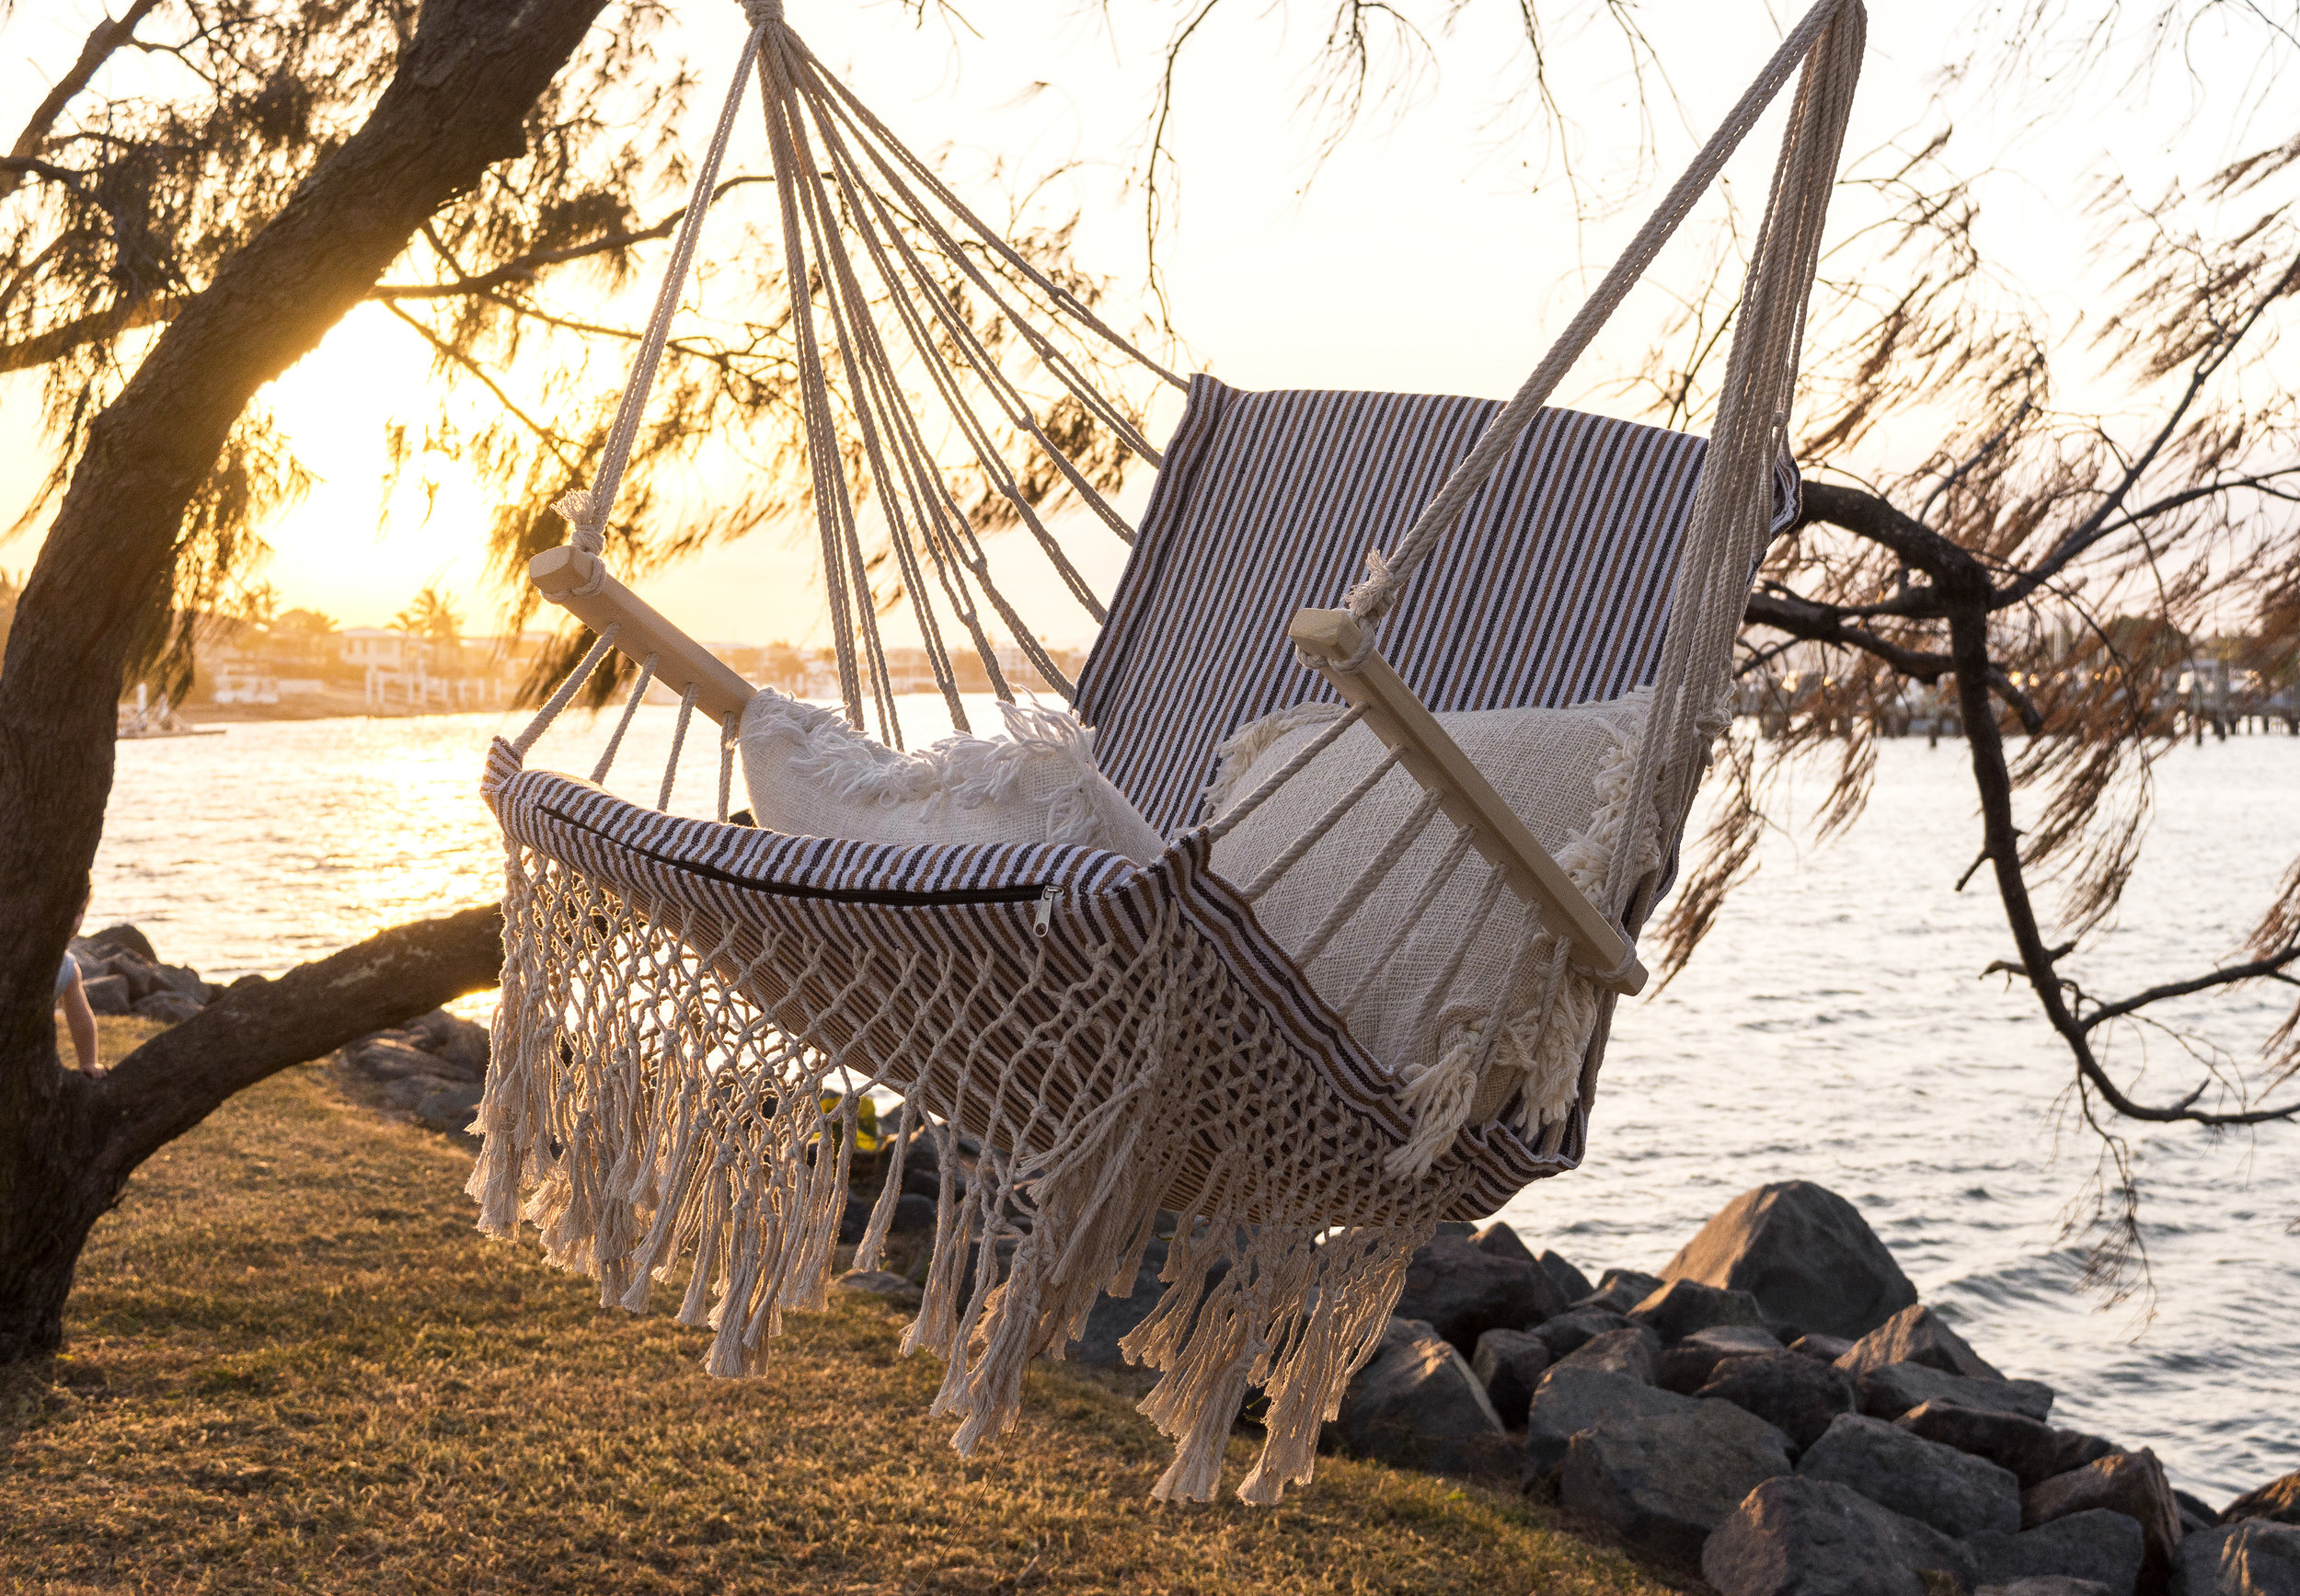 Golden hour photography in warm light. Image by Creatively Squared content creator Ali for OzTrail Hammocks.